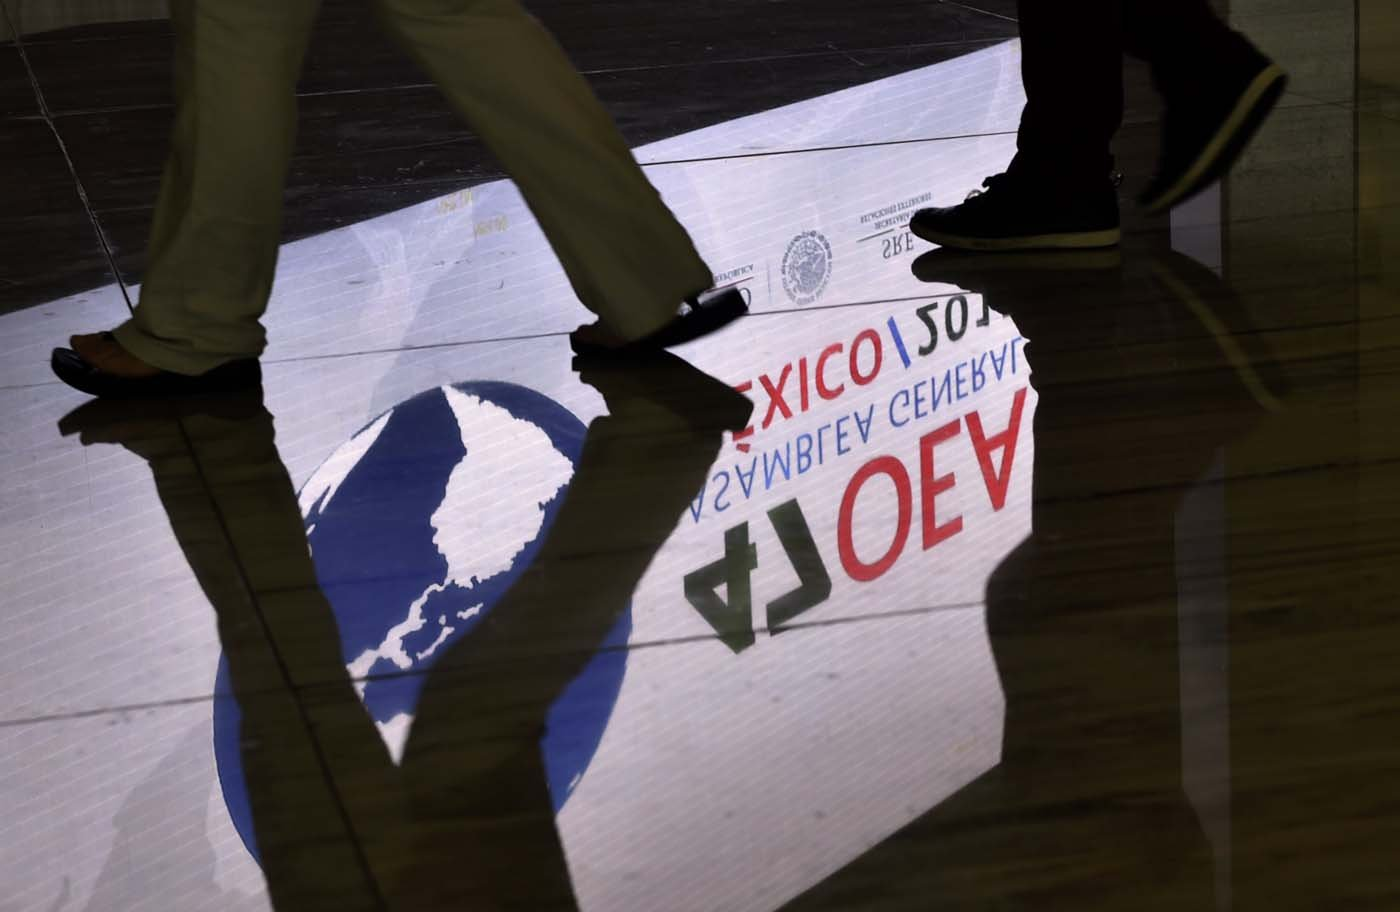 A screen displaying the logo of the 47th General Assembly of the Organization of American States (OAS) is reflected on the floor as people walk by, in the Mexican resort city of Cancun, on June 18, 2017. Foreign ministers from the OAS discuss taking action on the crisis in Venezuela -- a meeting that has infuriated President Nicolas Maduro's government -- ahead of the regional group's general assembly, which runs from Monday through Wednesday. / AFP PHOTO / Pedro PARDO